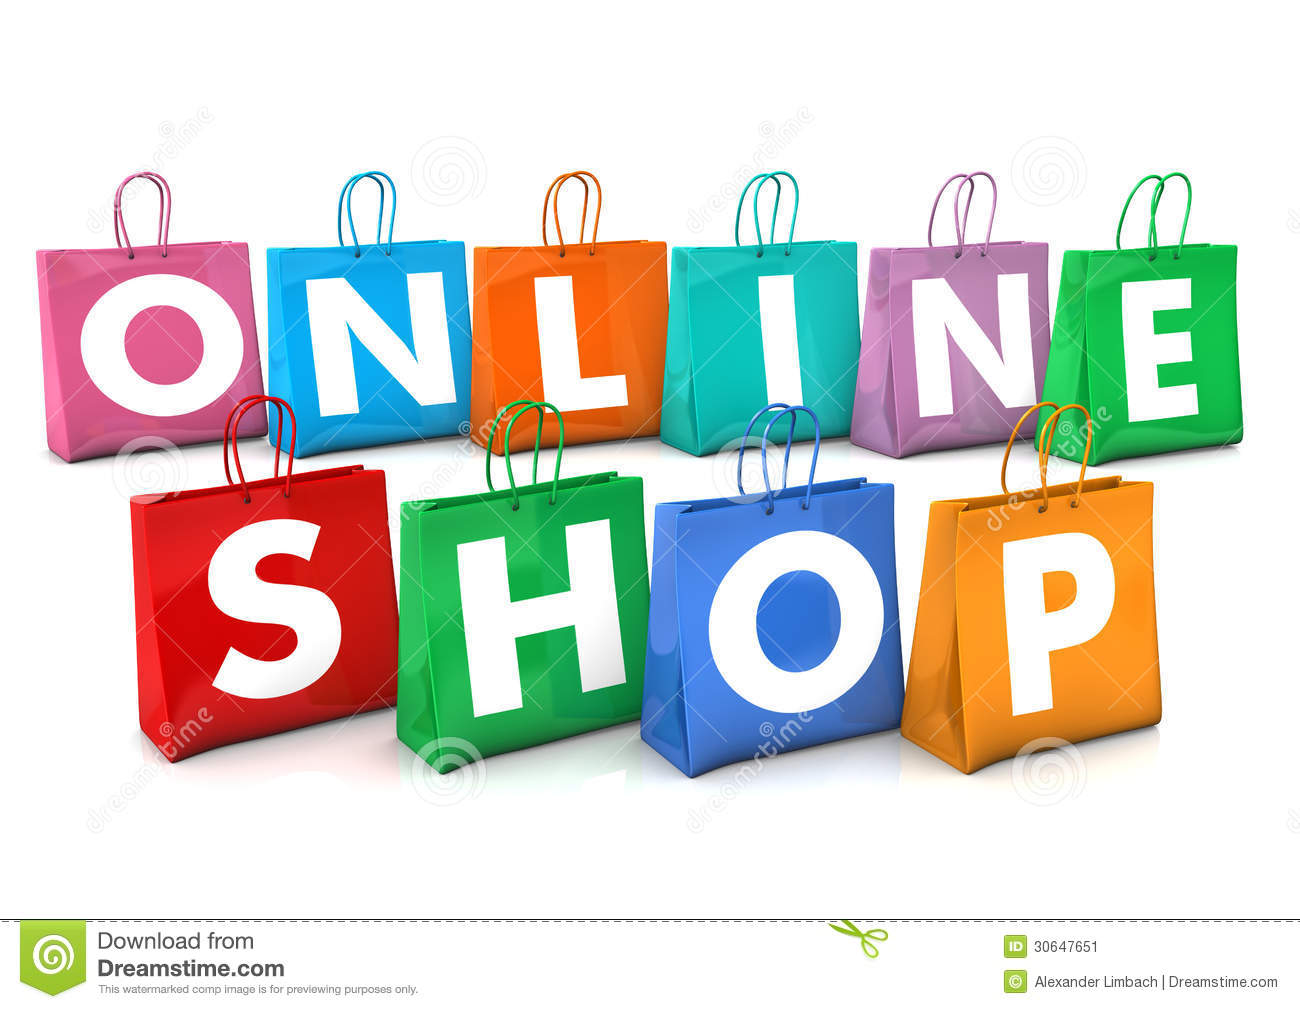 online-shopping-bags-white-text-shop-white-background-30647651.jpg